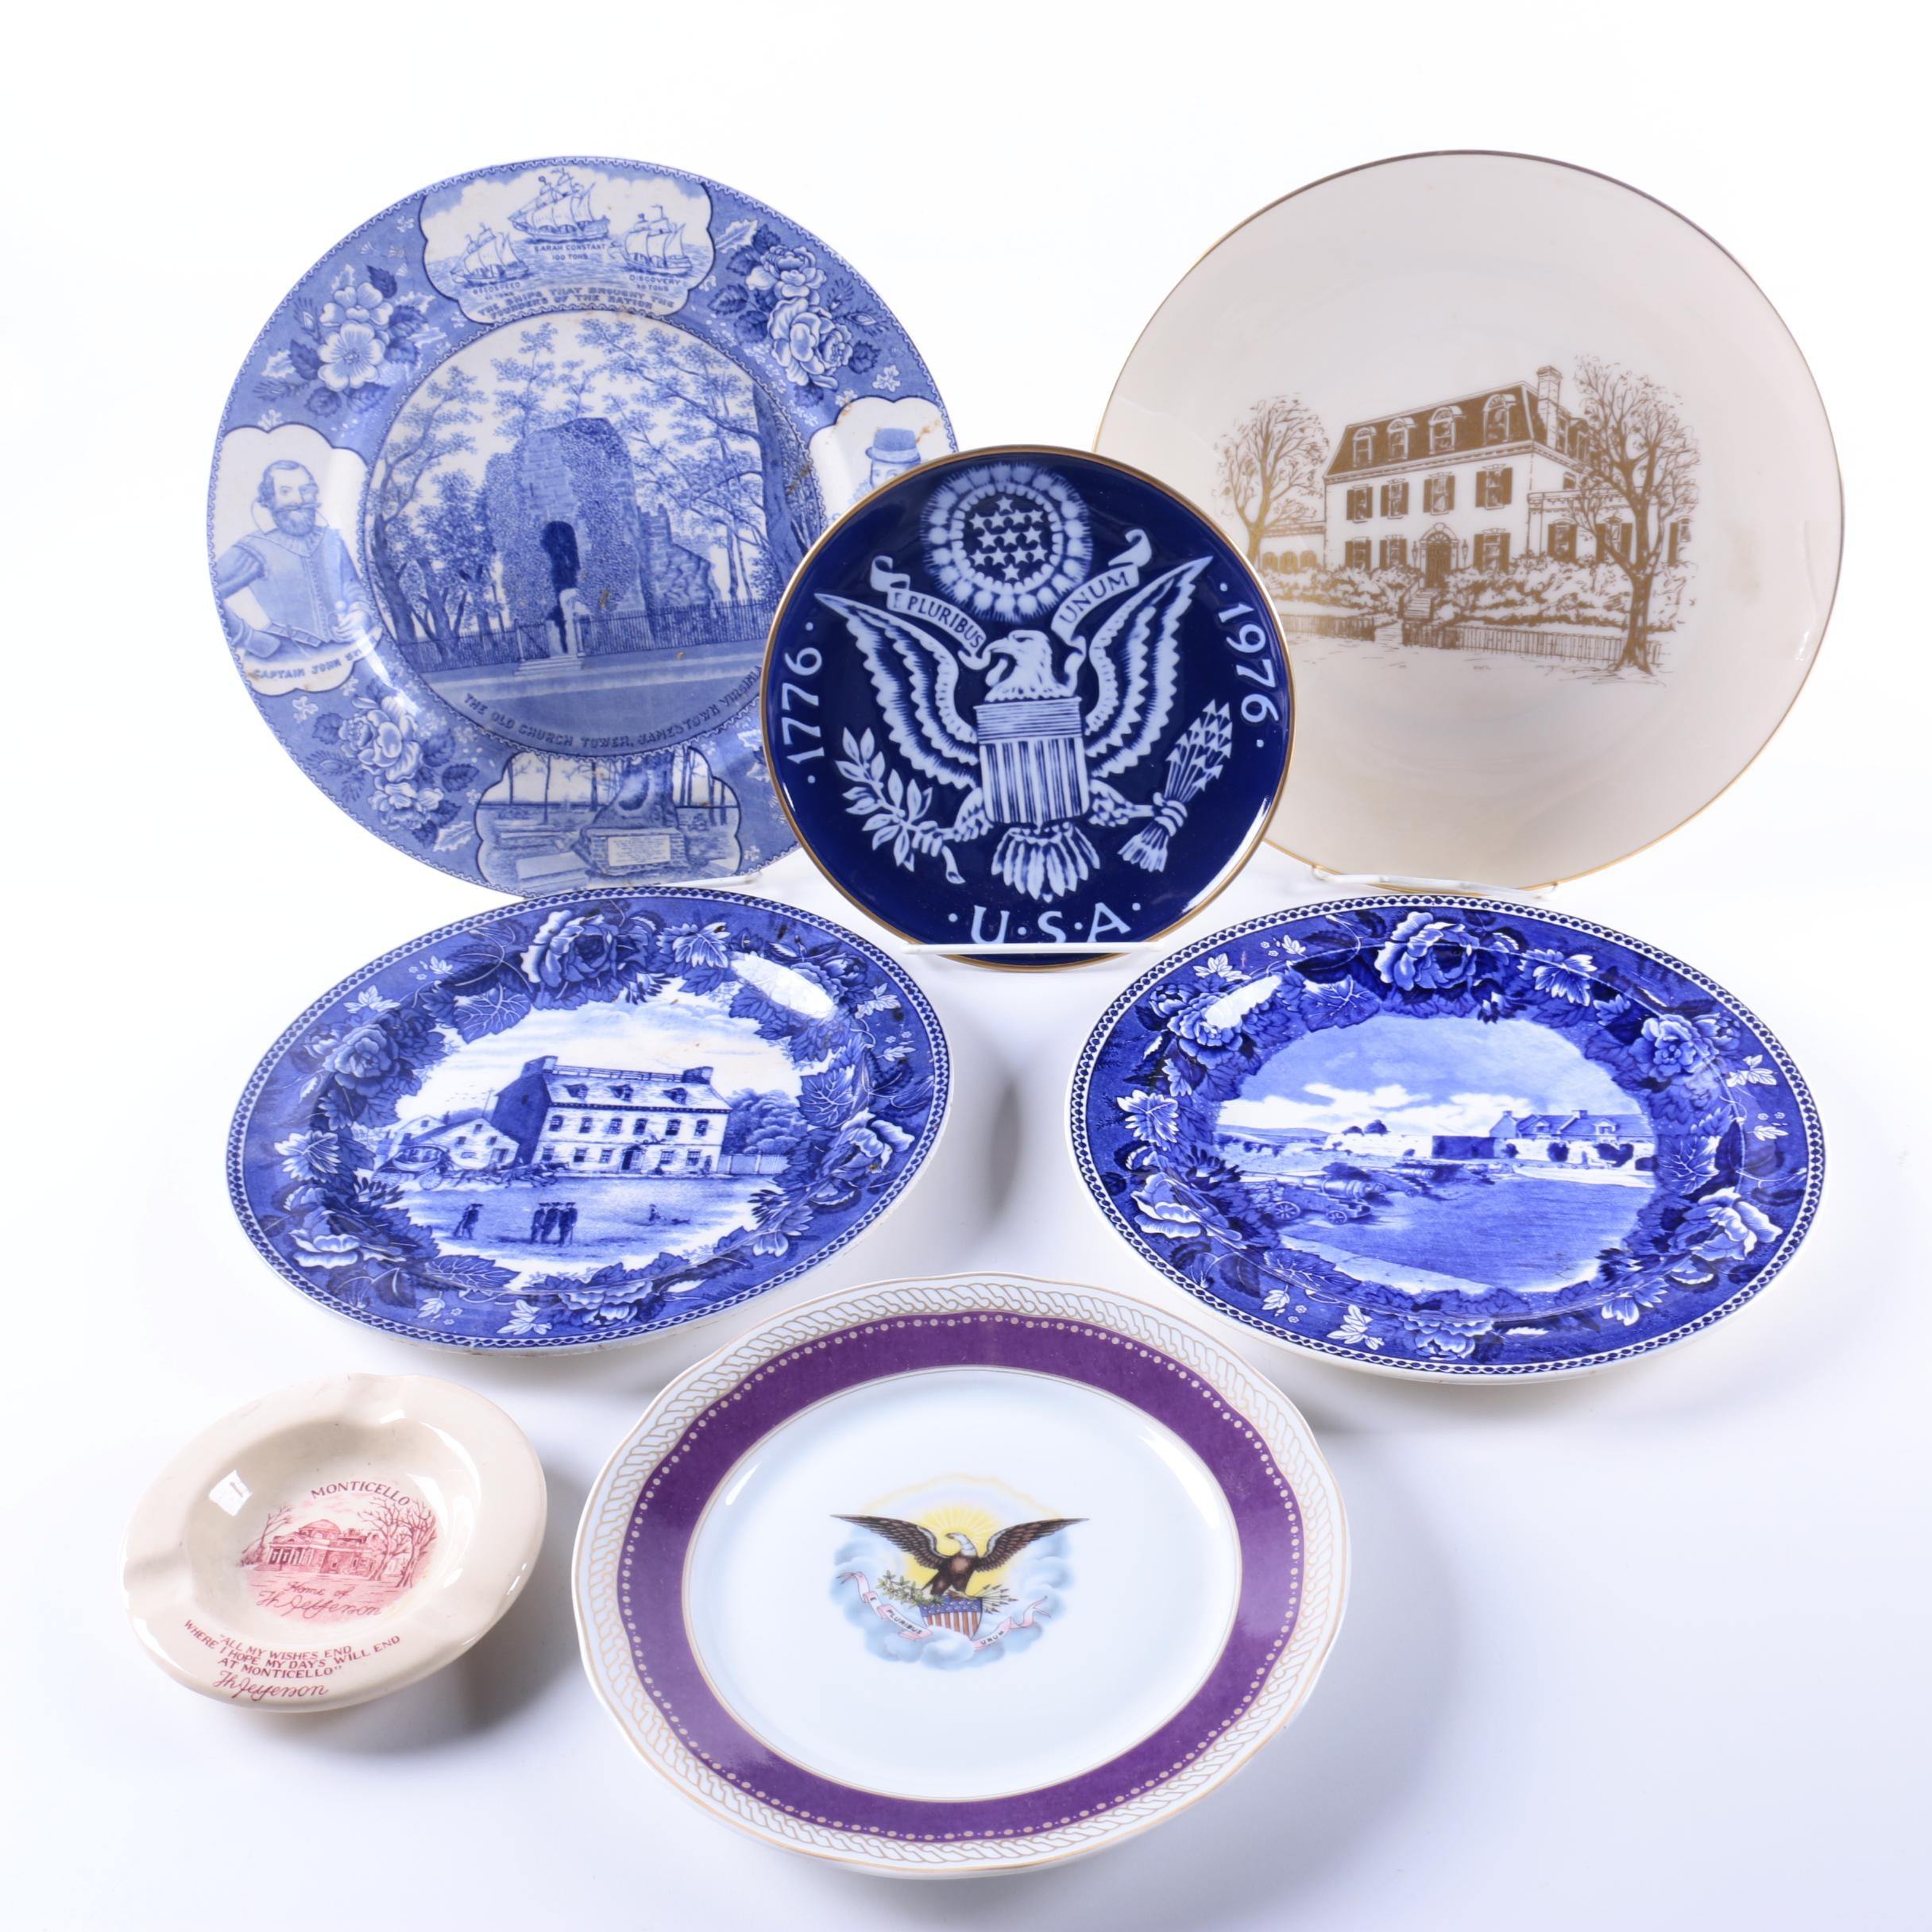 American Themed Commemorative Porcelain Plates and Ash Receiver